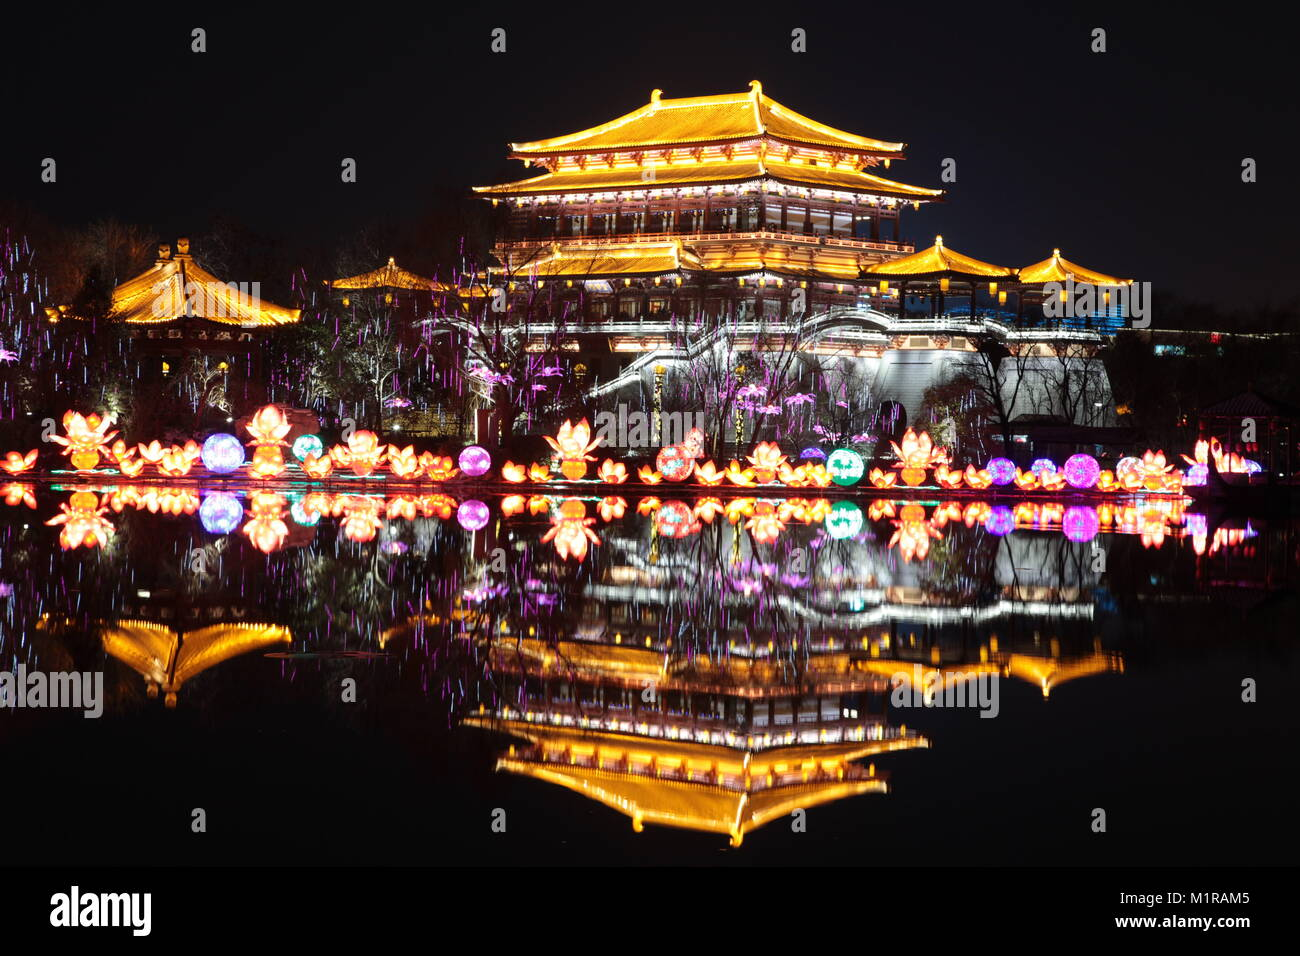 Xi'an, China. 31st January, 2018. The lantern fair is held in Xi'an, northwest China's Shaanxi Province. - Stock Image